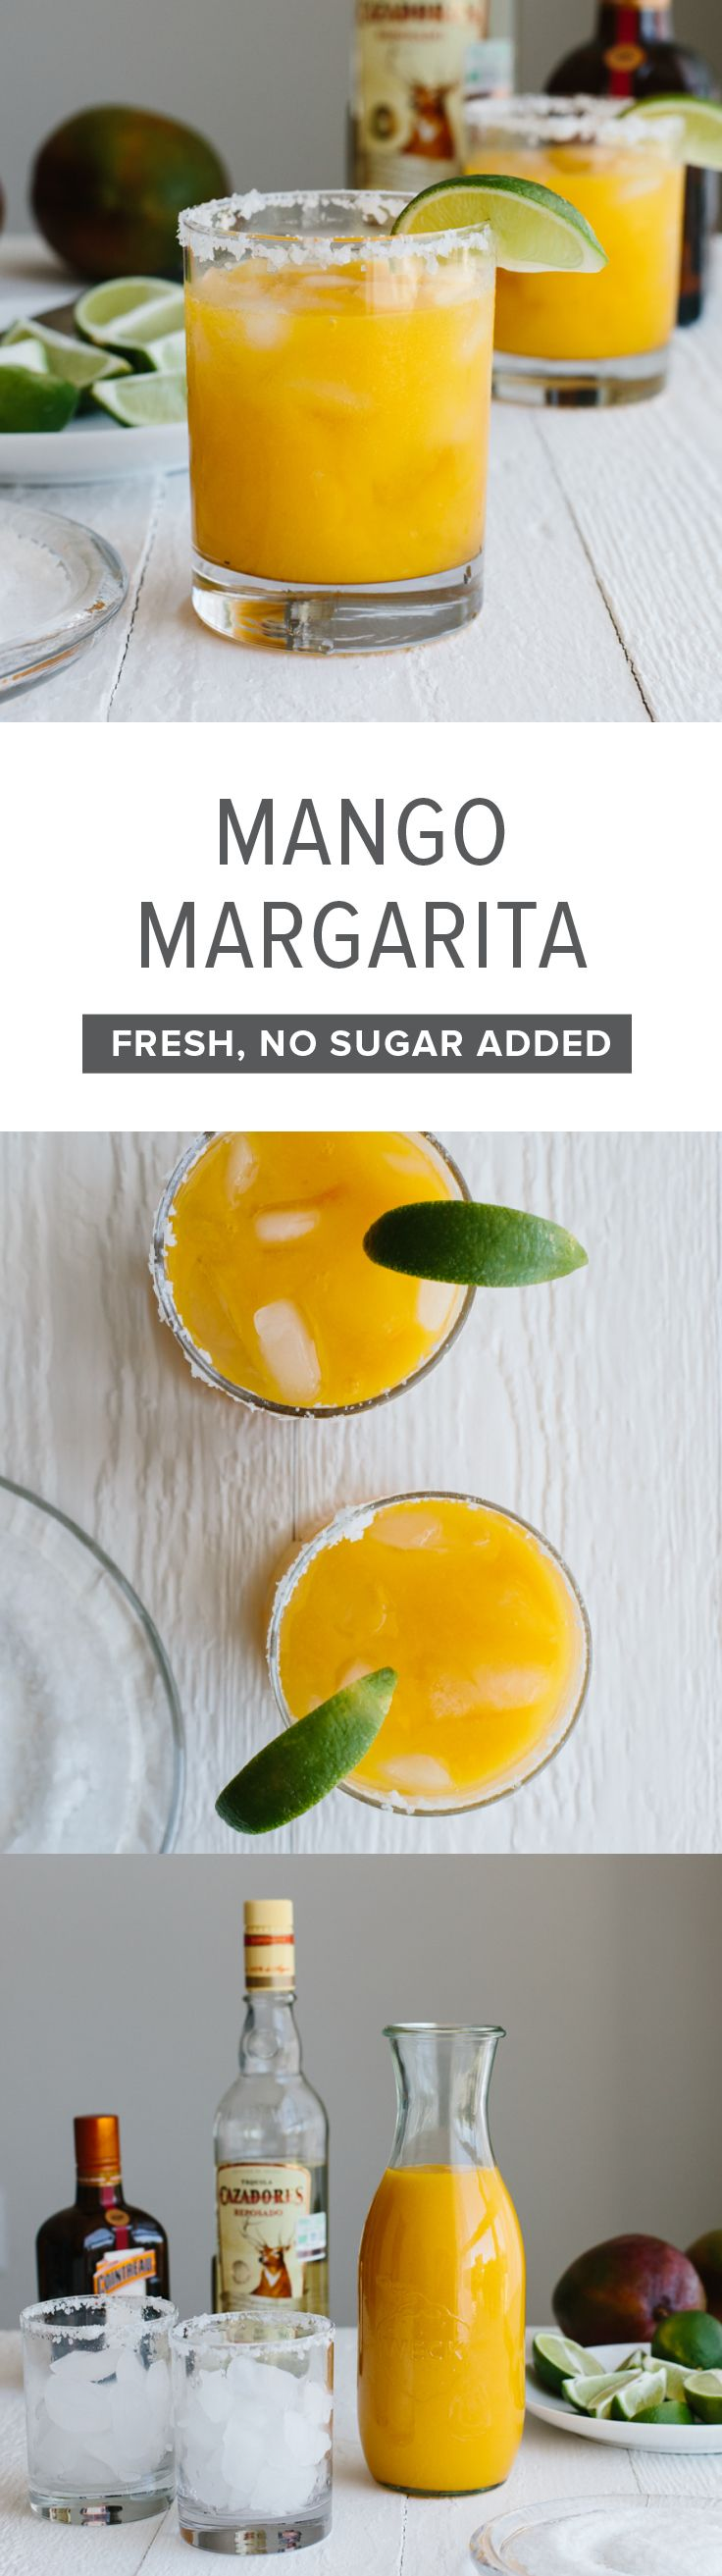 This mango margarita on the rocks uses all fresh ingredients (and has no added sugar). It's the perfect fruity cocktail!